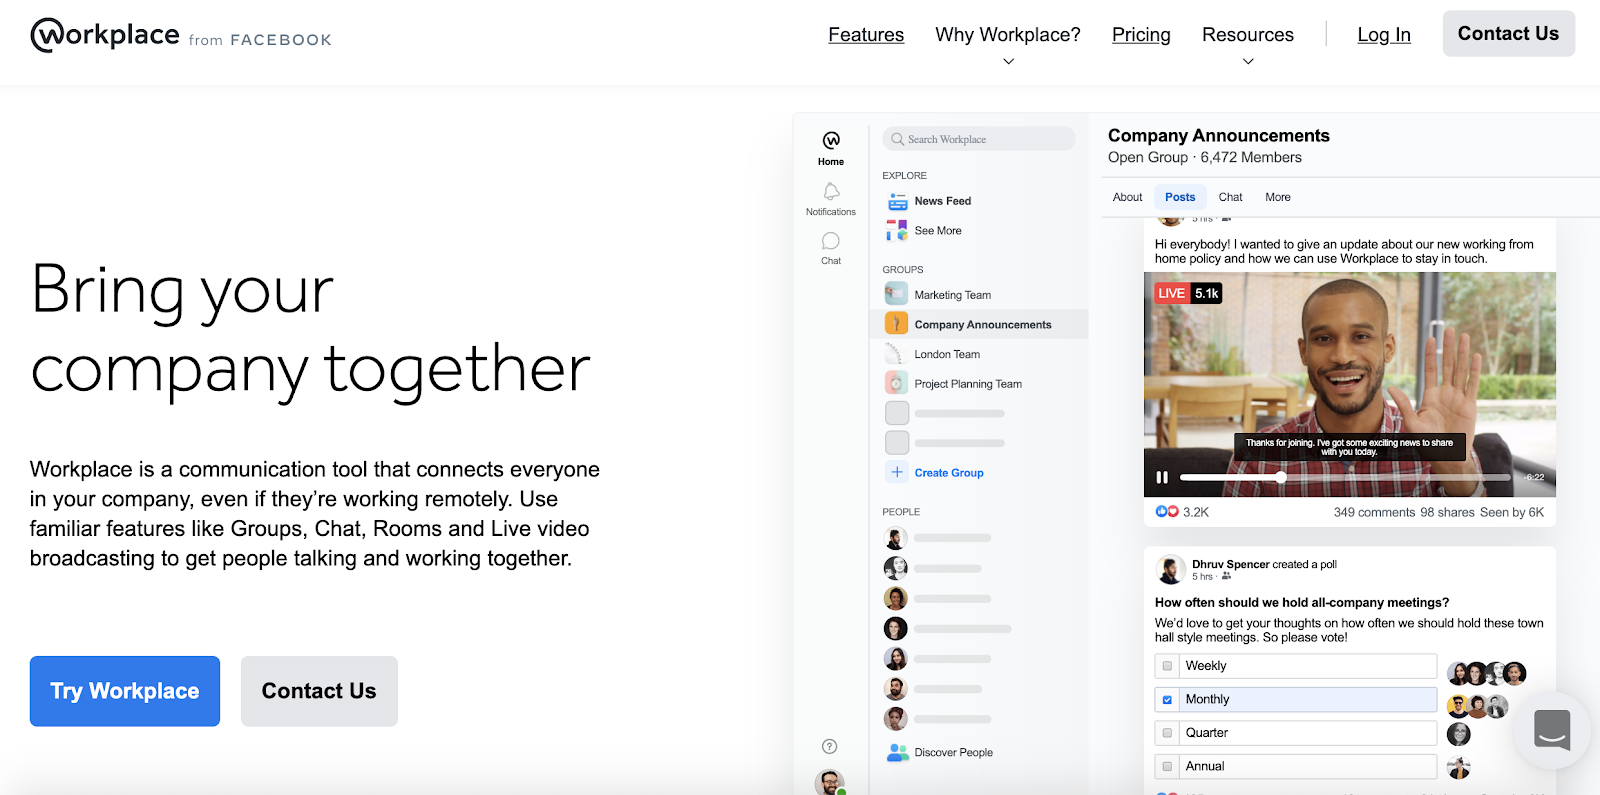 Workplace from Facebook interface